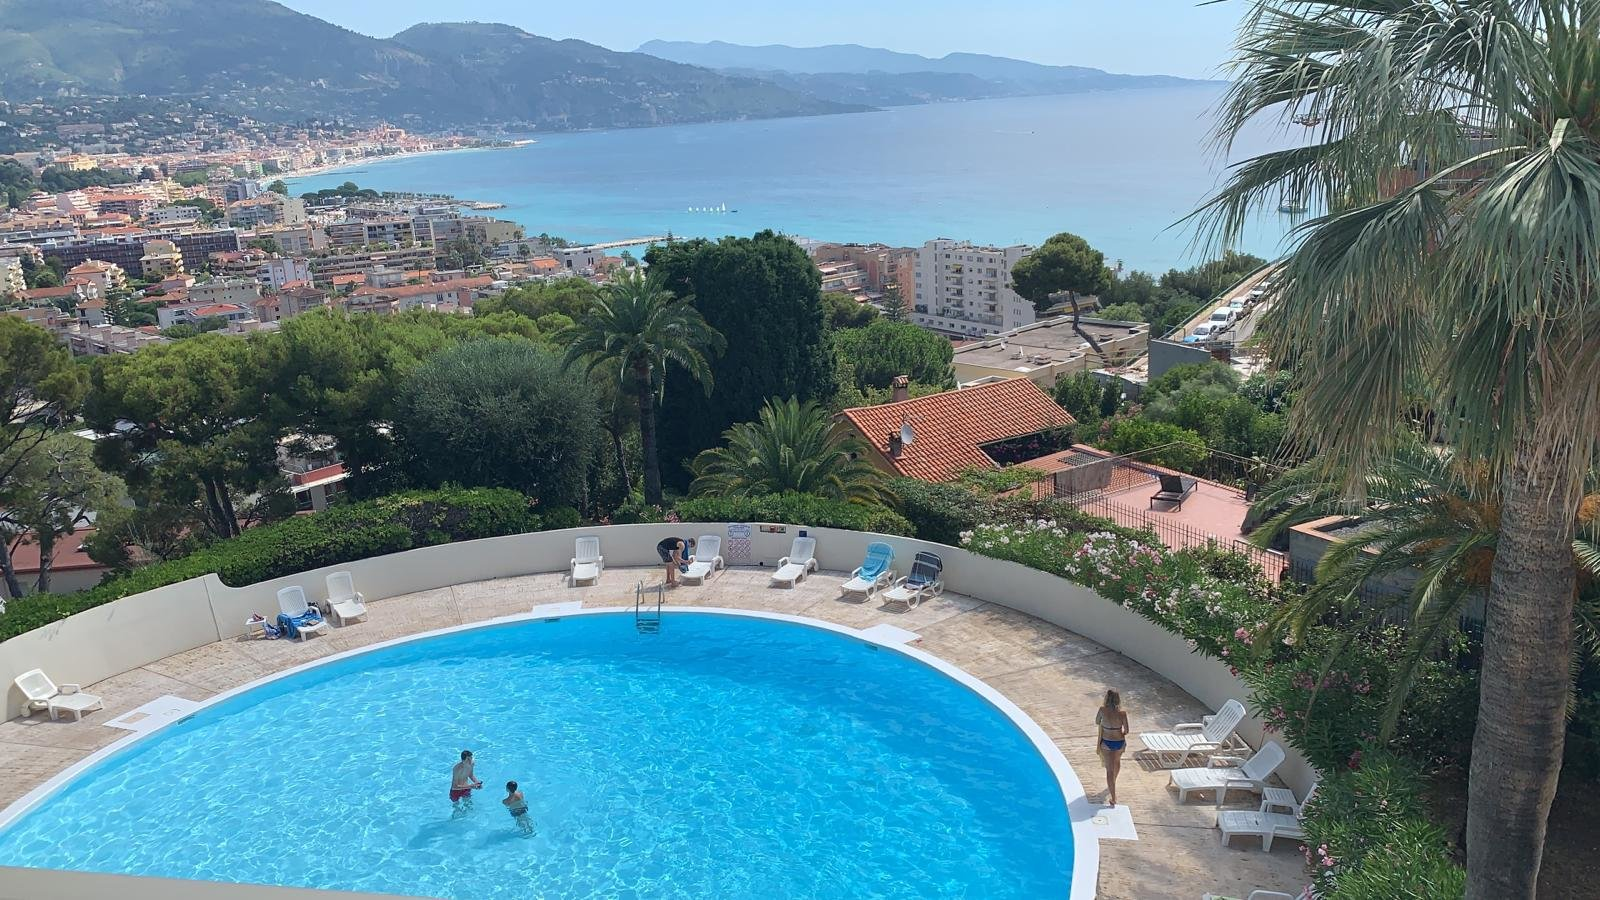 Sale apartment sea view - roquebrune cap martin